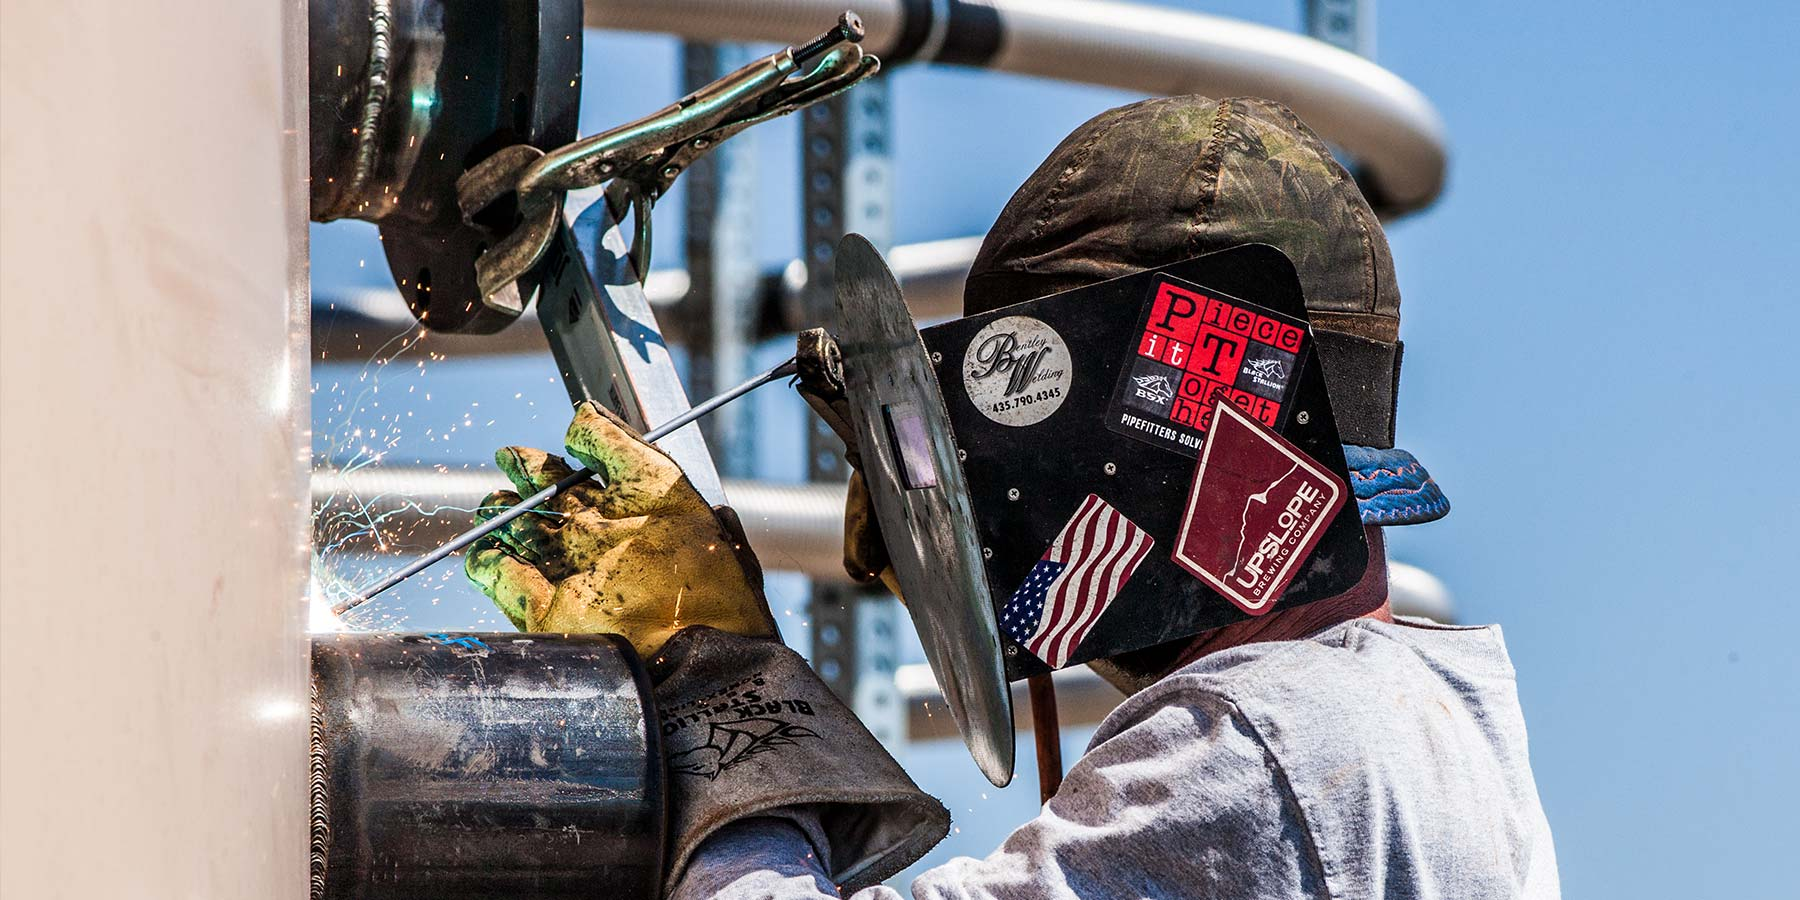 Bentley Welding, Inc. - On-Site Welding